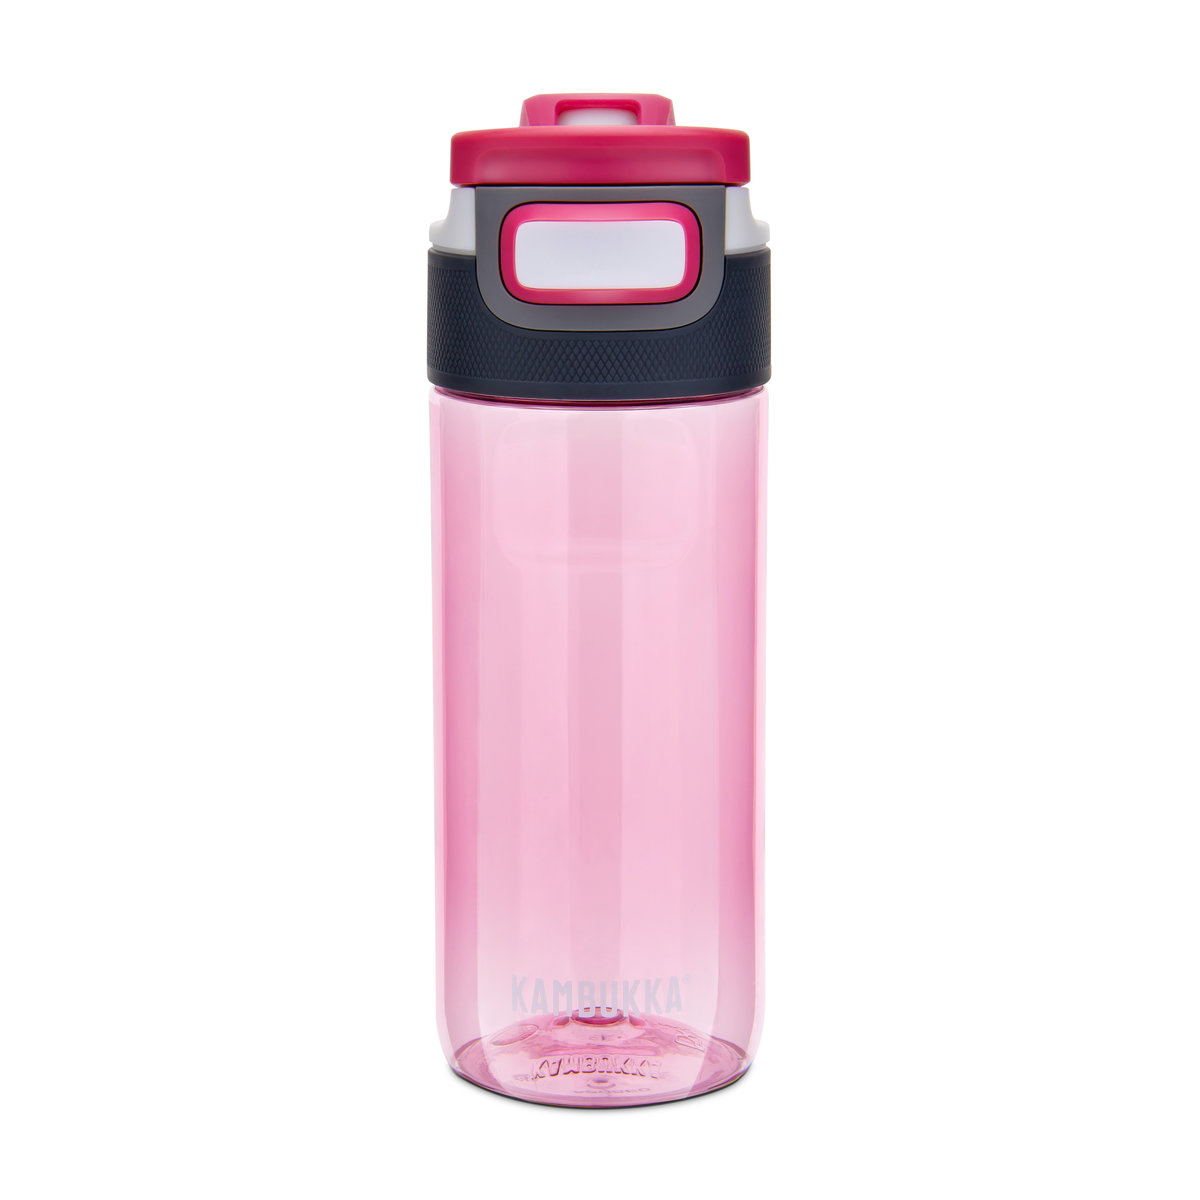 Kambukka Elton 3 in 1 Snap Clean Water Bottle (Tritan) 17oz (500ml) - Pearl Blush